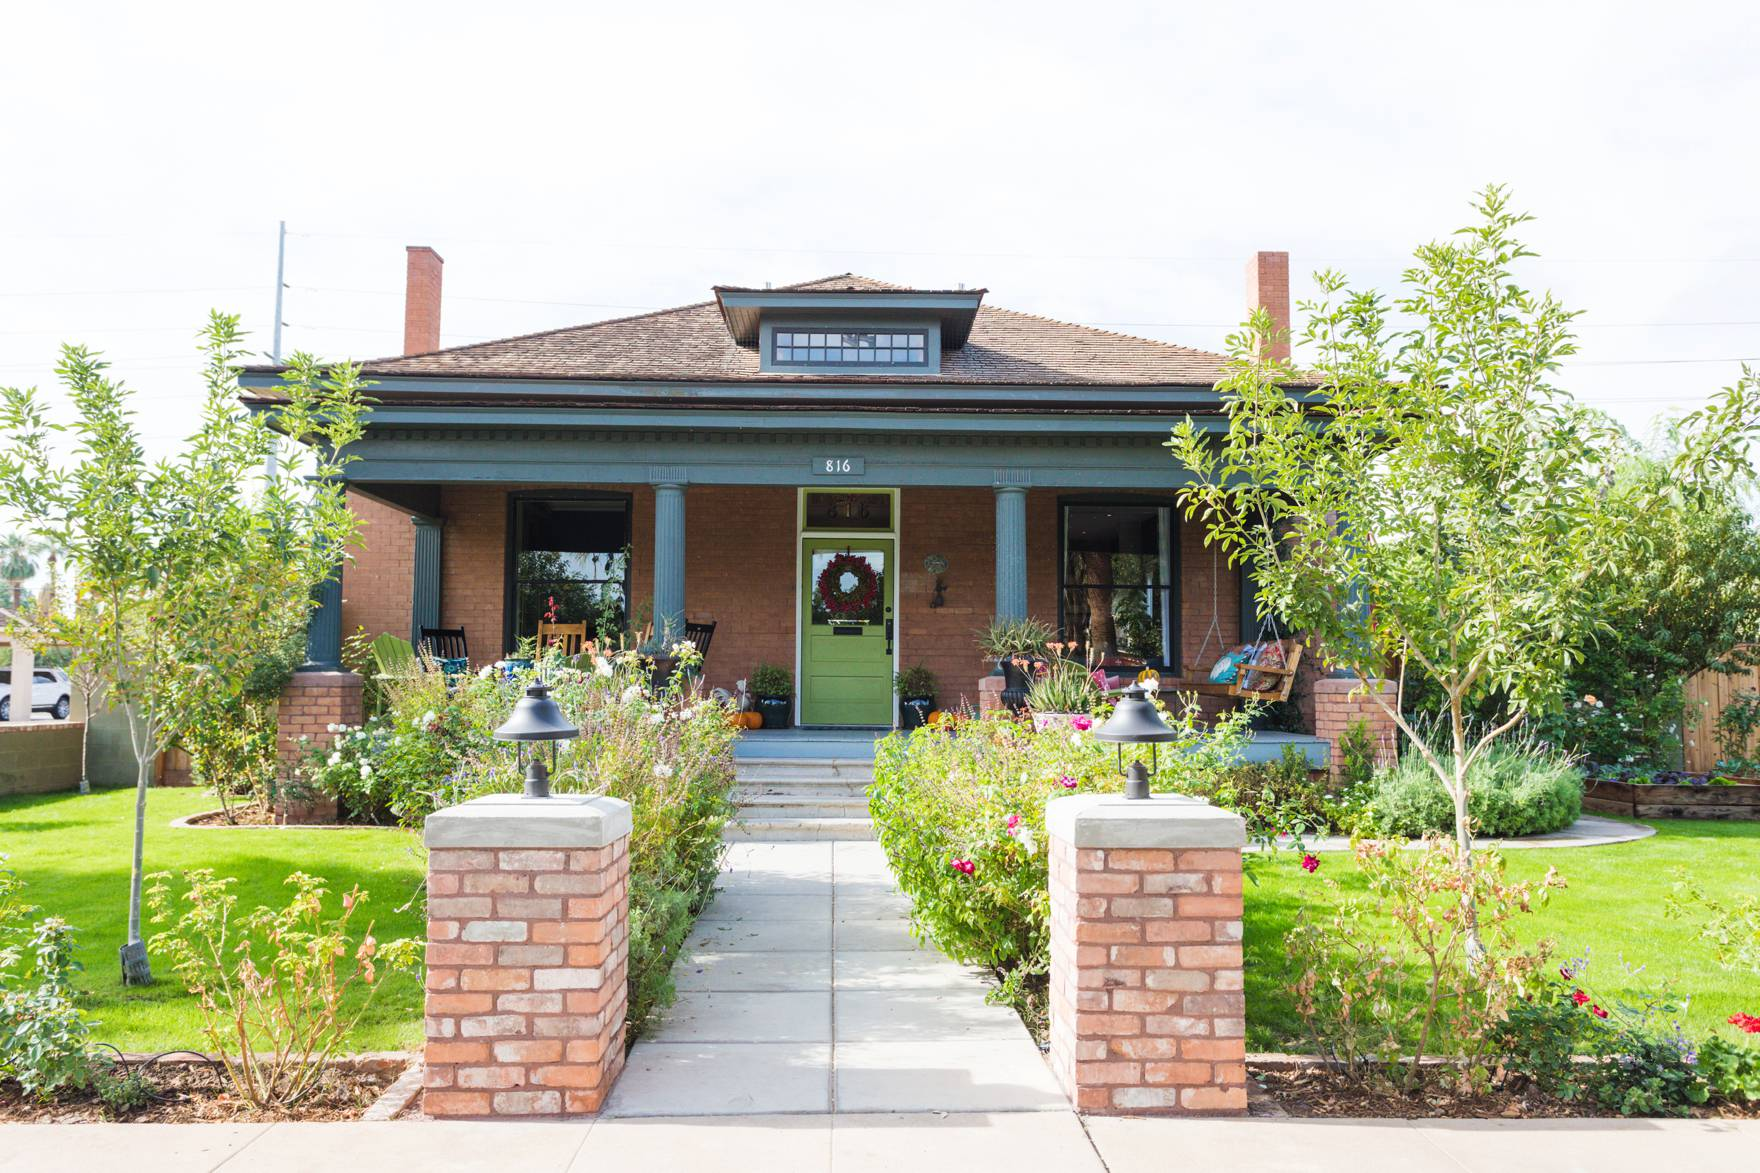 Home Tour of Boho Farm and Home in Downtown Phoenix - cottage brick style home from 1903